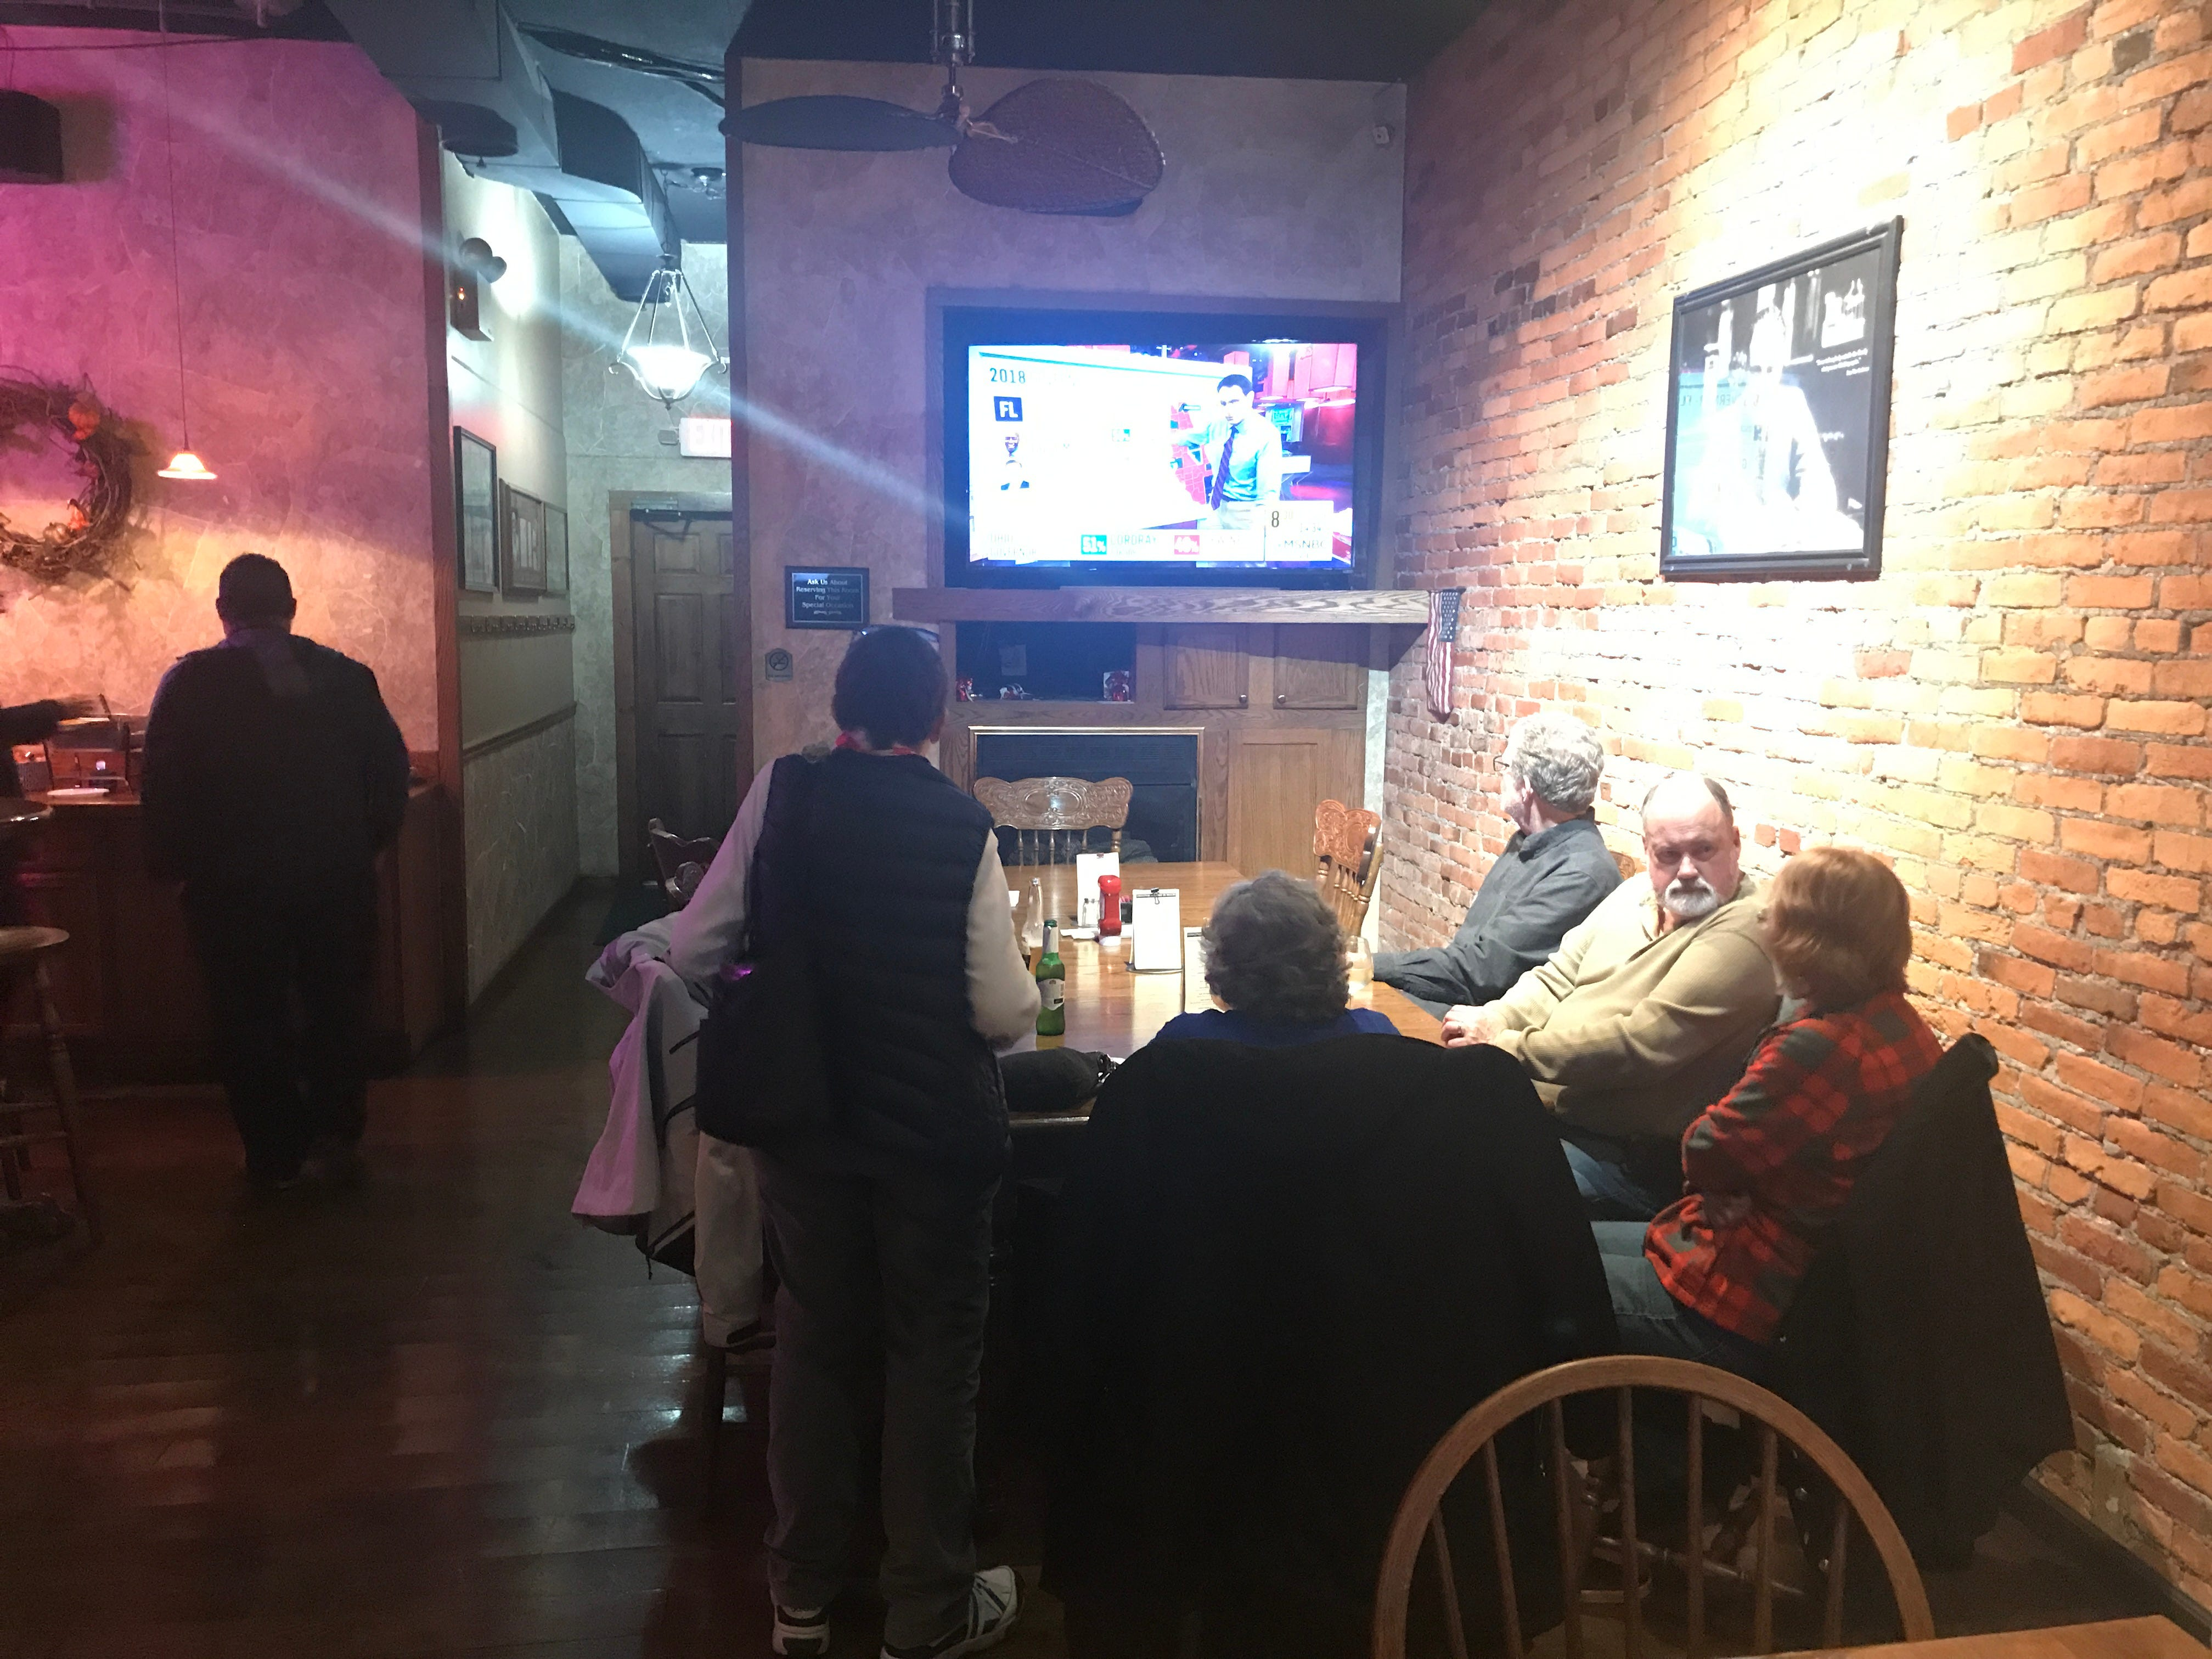 Democrats watch election results on a television at the Downtown Lounge in Lebanon on Tuesday evening.